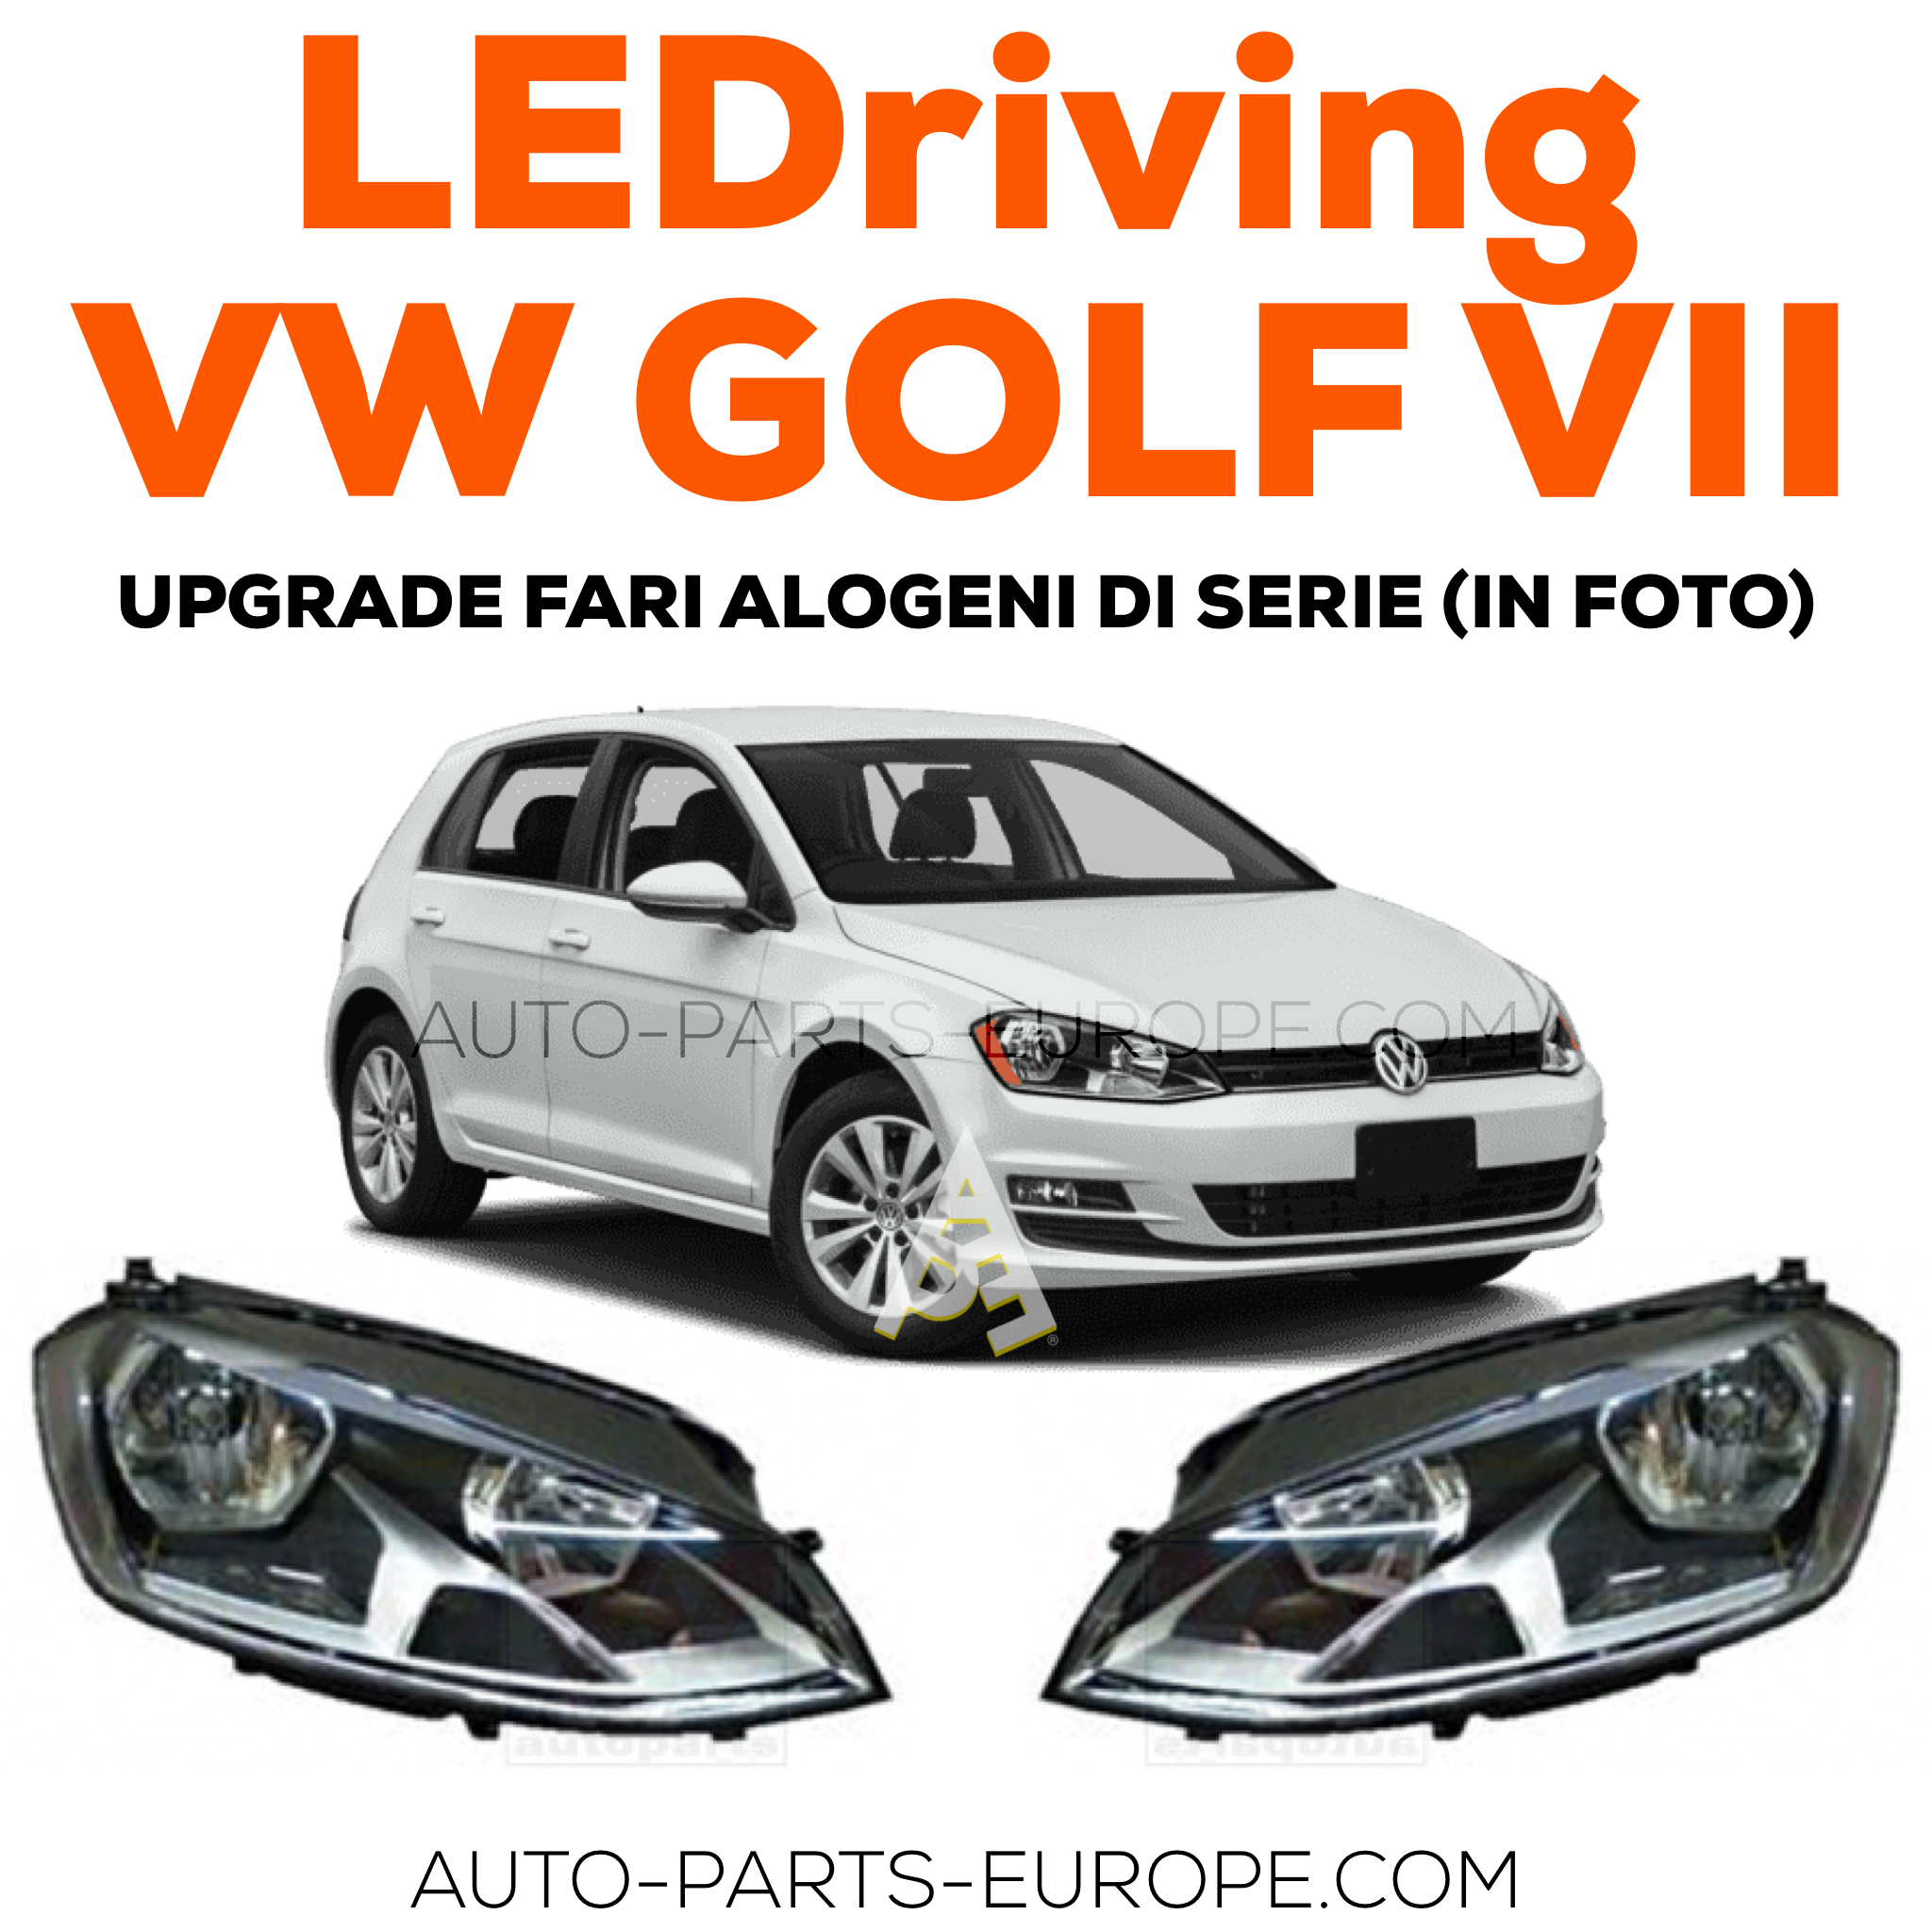 LEDriving VW GOLF VII